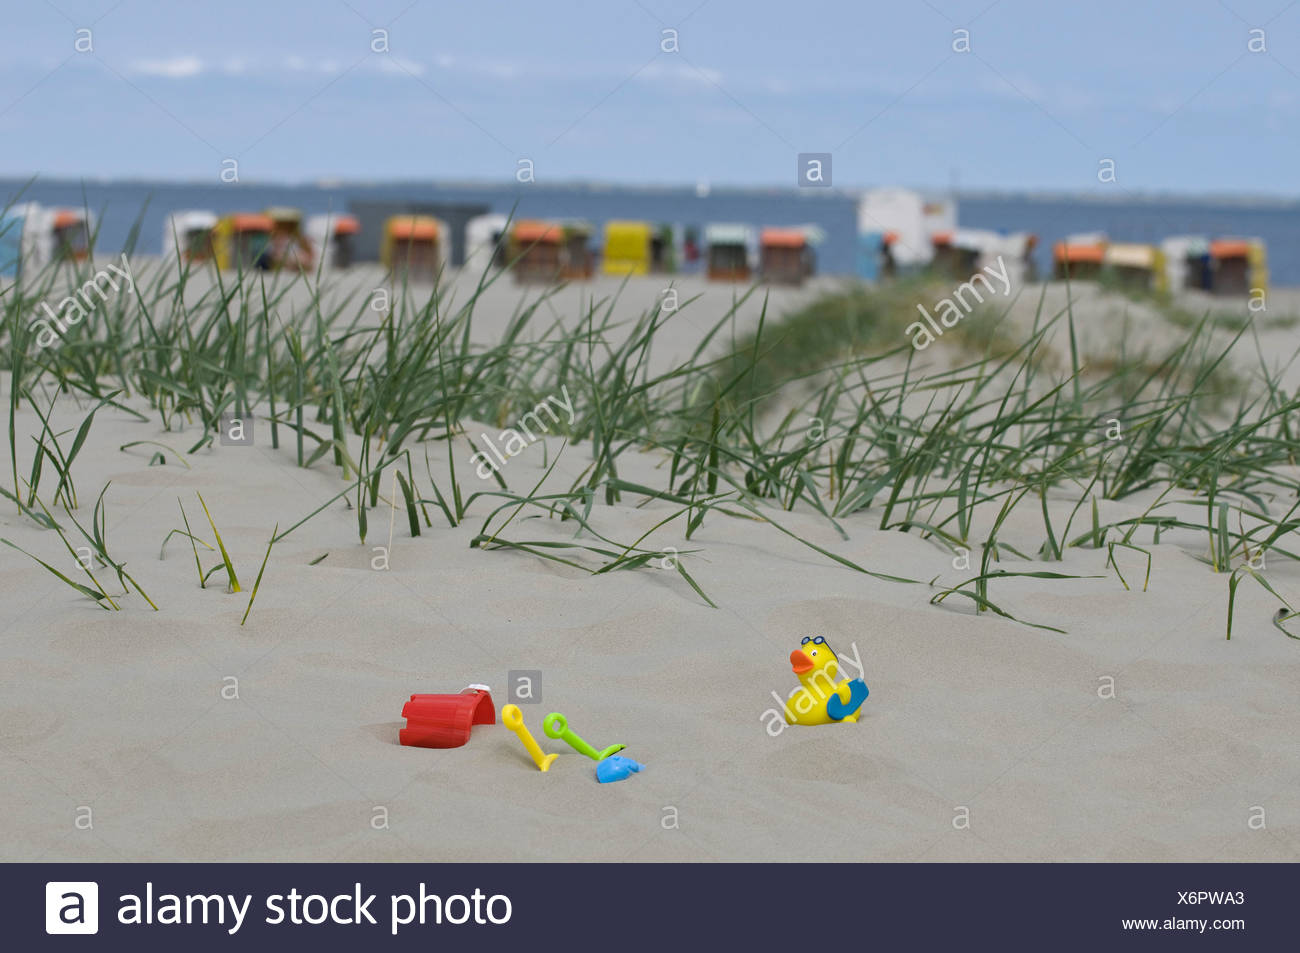 Holidays, children's toys on a sand dune in front of roofed wicker beach chairs on a beach and the sea, Norddeich, Norden - Stock Image